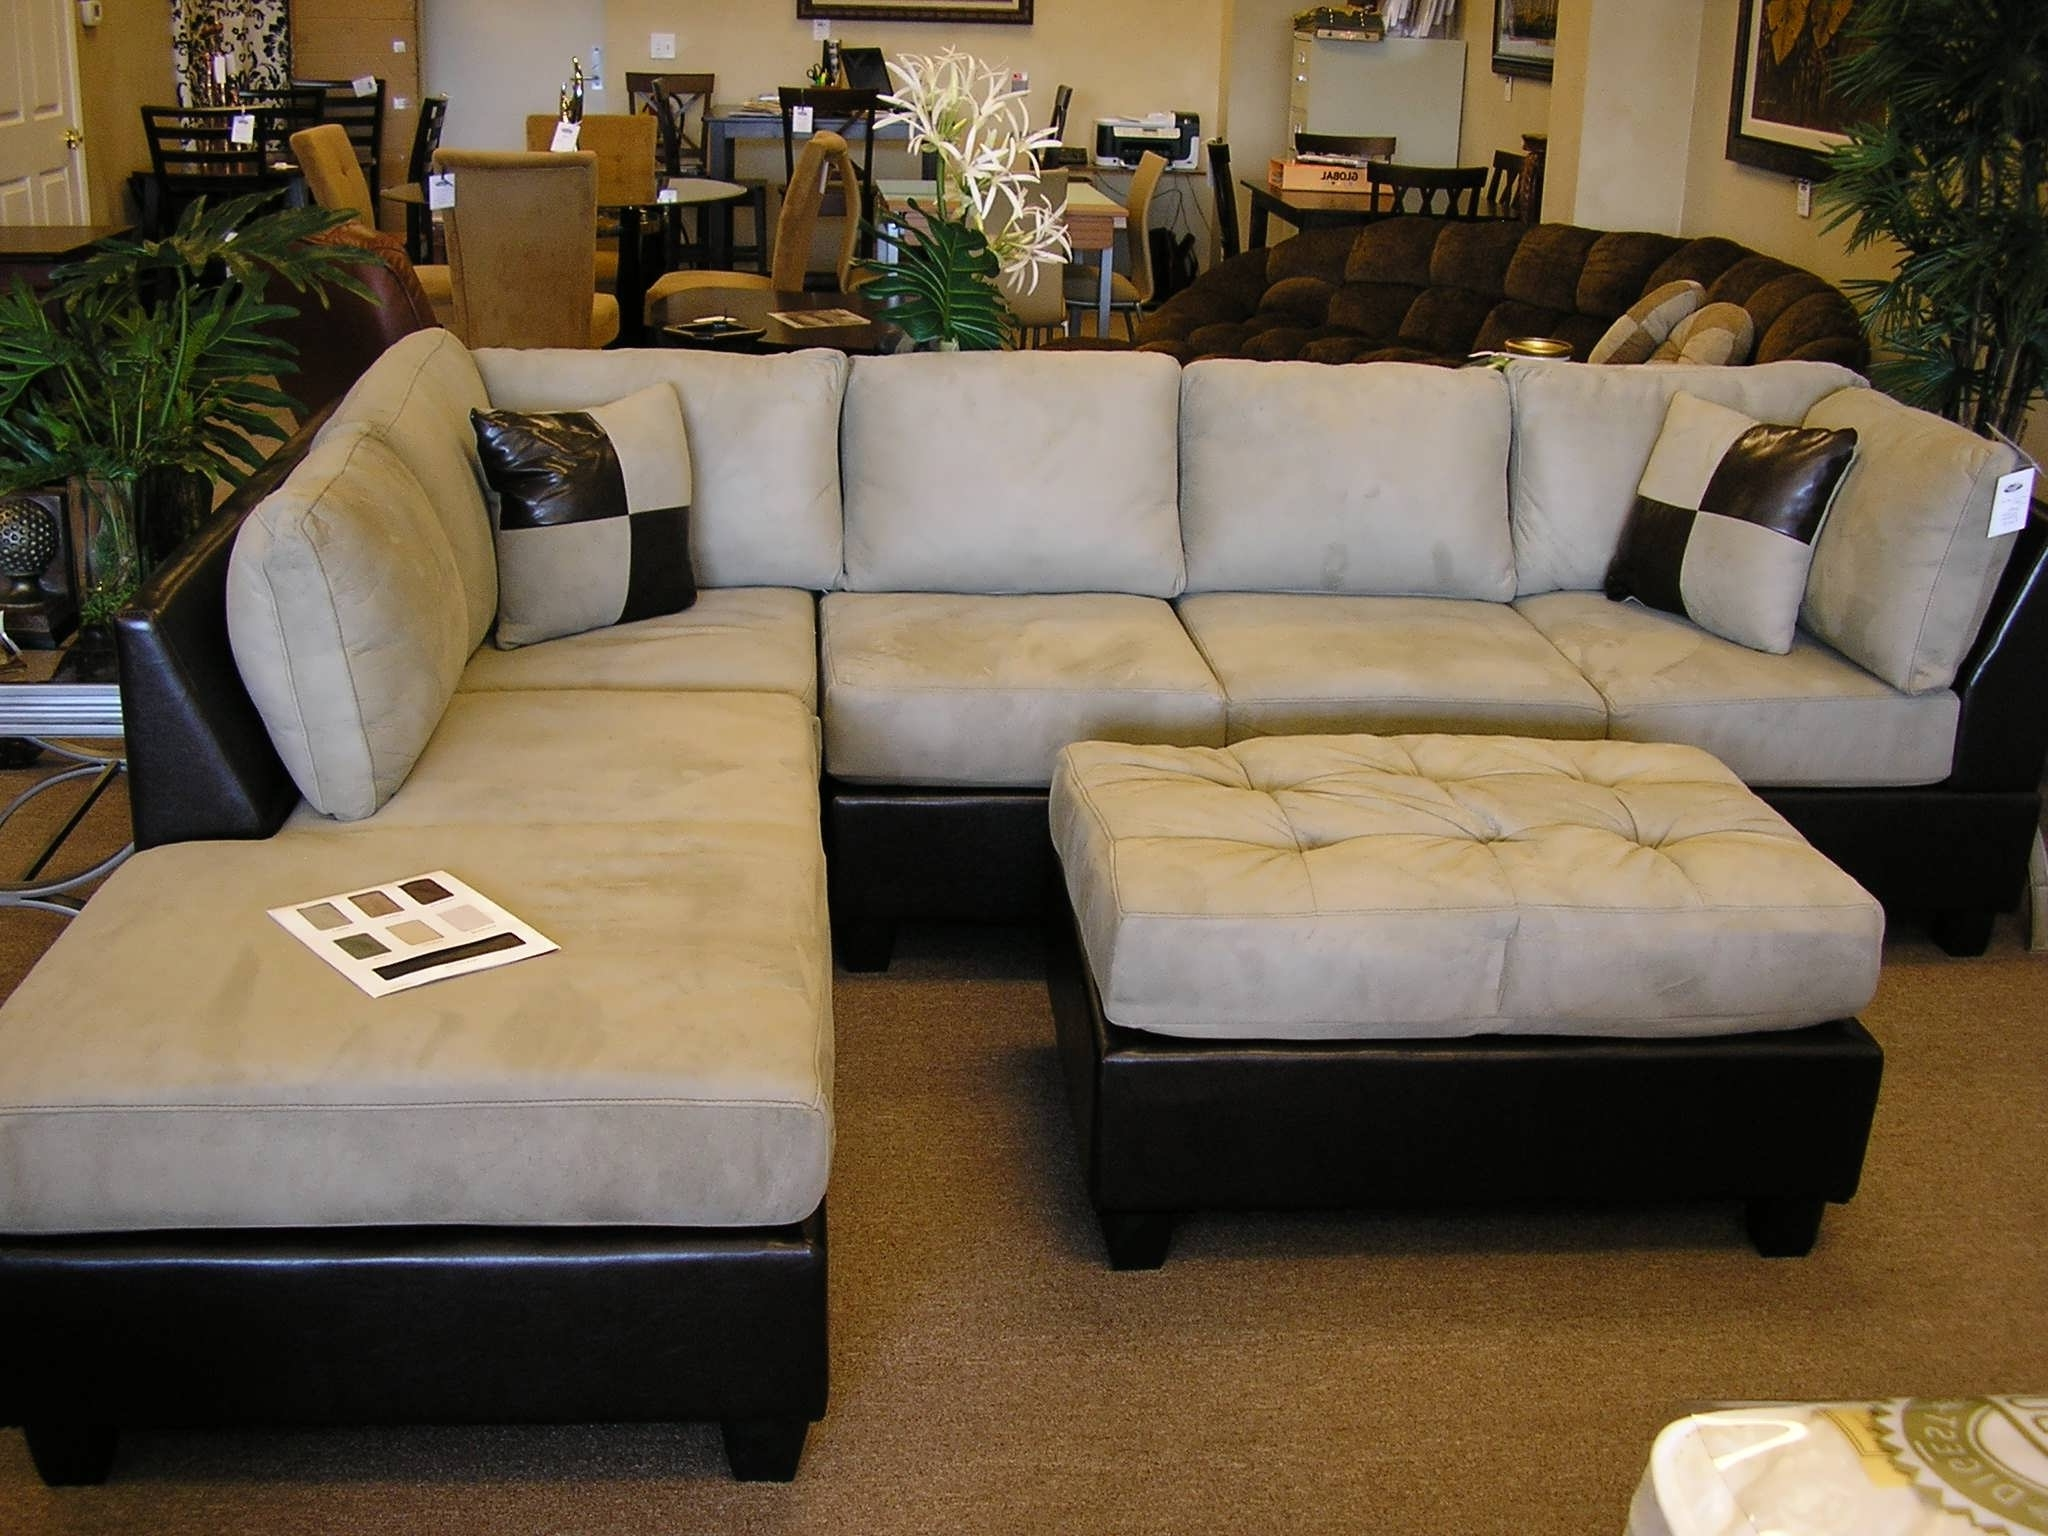 Sofa : Sectional Sofa Set L Shaped Fabric Sofa Chaise Sofa Leather For Famous Sofa And Chaise Sets (View 8 of 15)